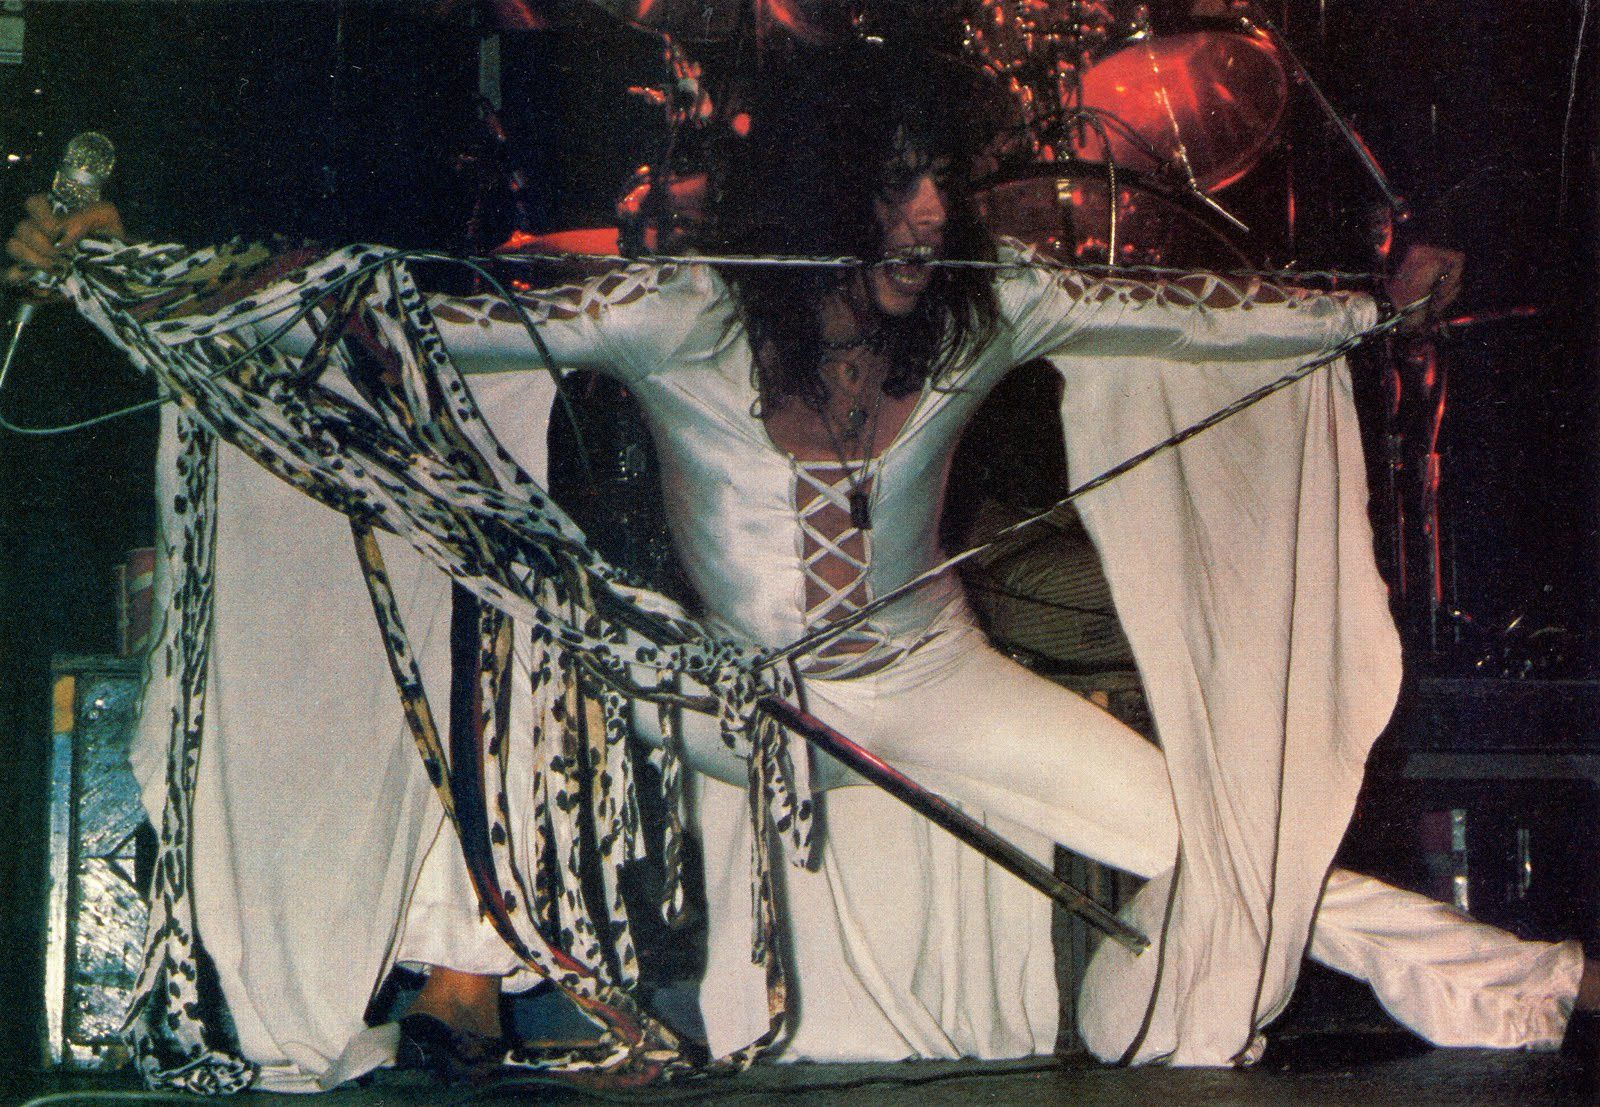 Steven Tyler - 1991 - the Demon of Screamin